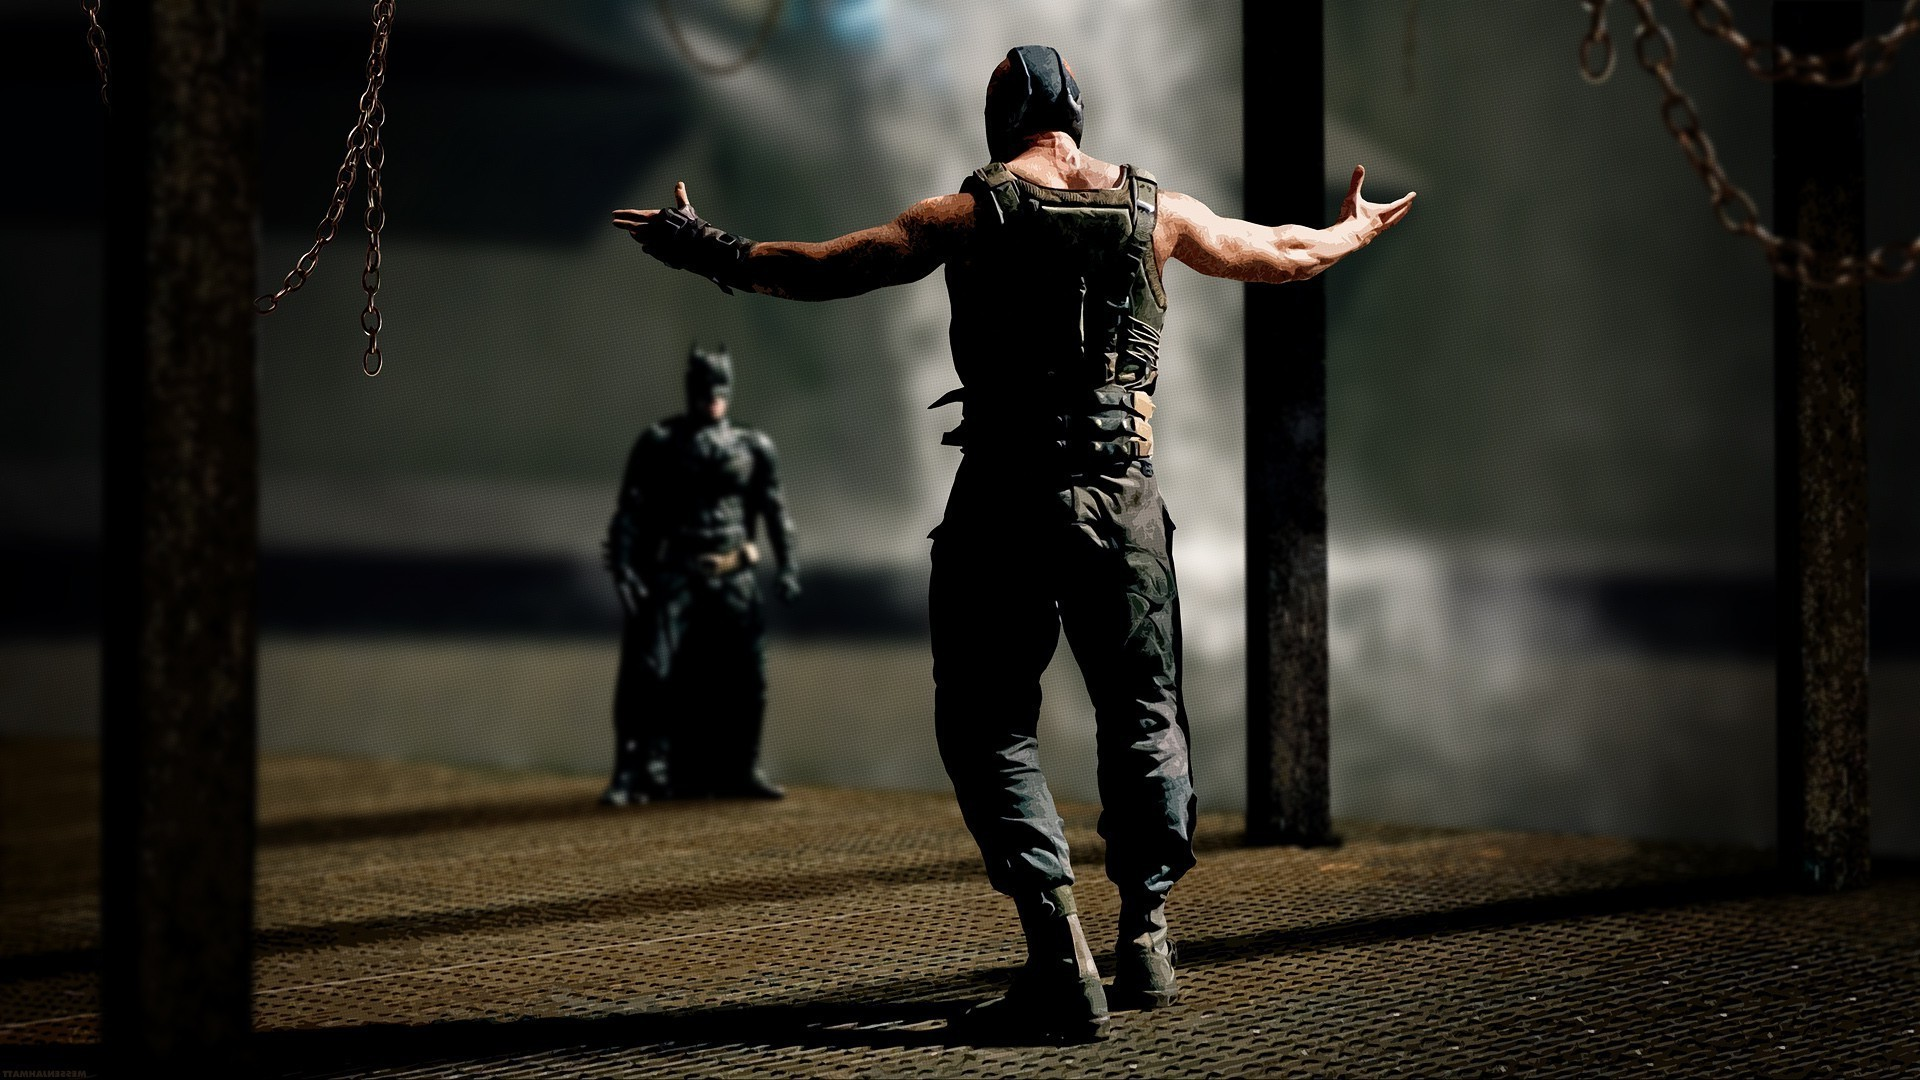 1920x1080 Bane, Batman, The Dark Knight Rises, Chains, MessenjahMatt Wallpapers HD /  Desktop and Mobile Backgrounds